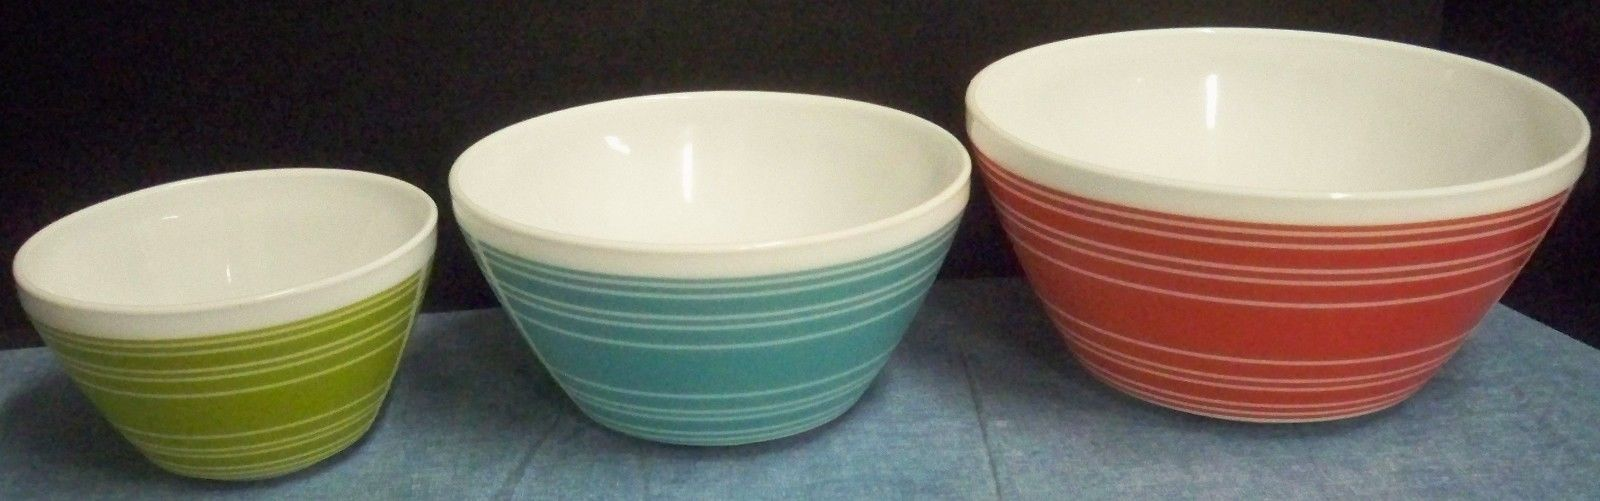 Set of 3 Vintage Charm Inspired by Pyrex Mixing Bowls Red Turquoise Green Stripe